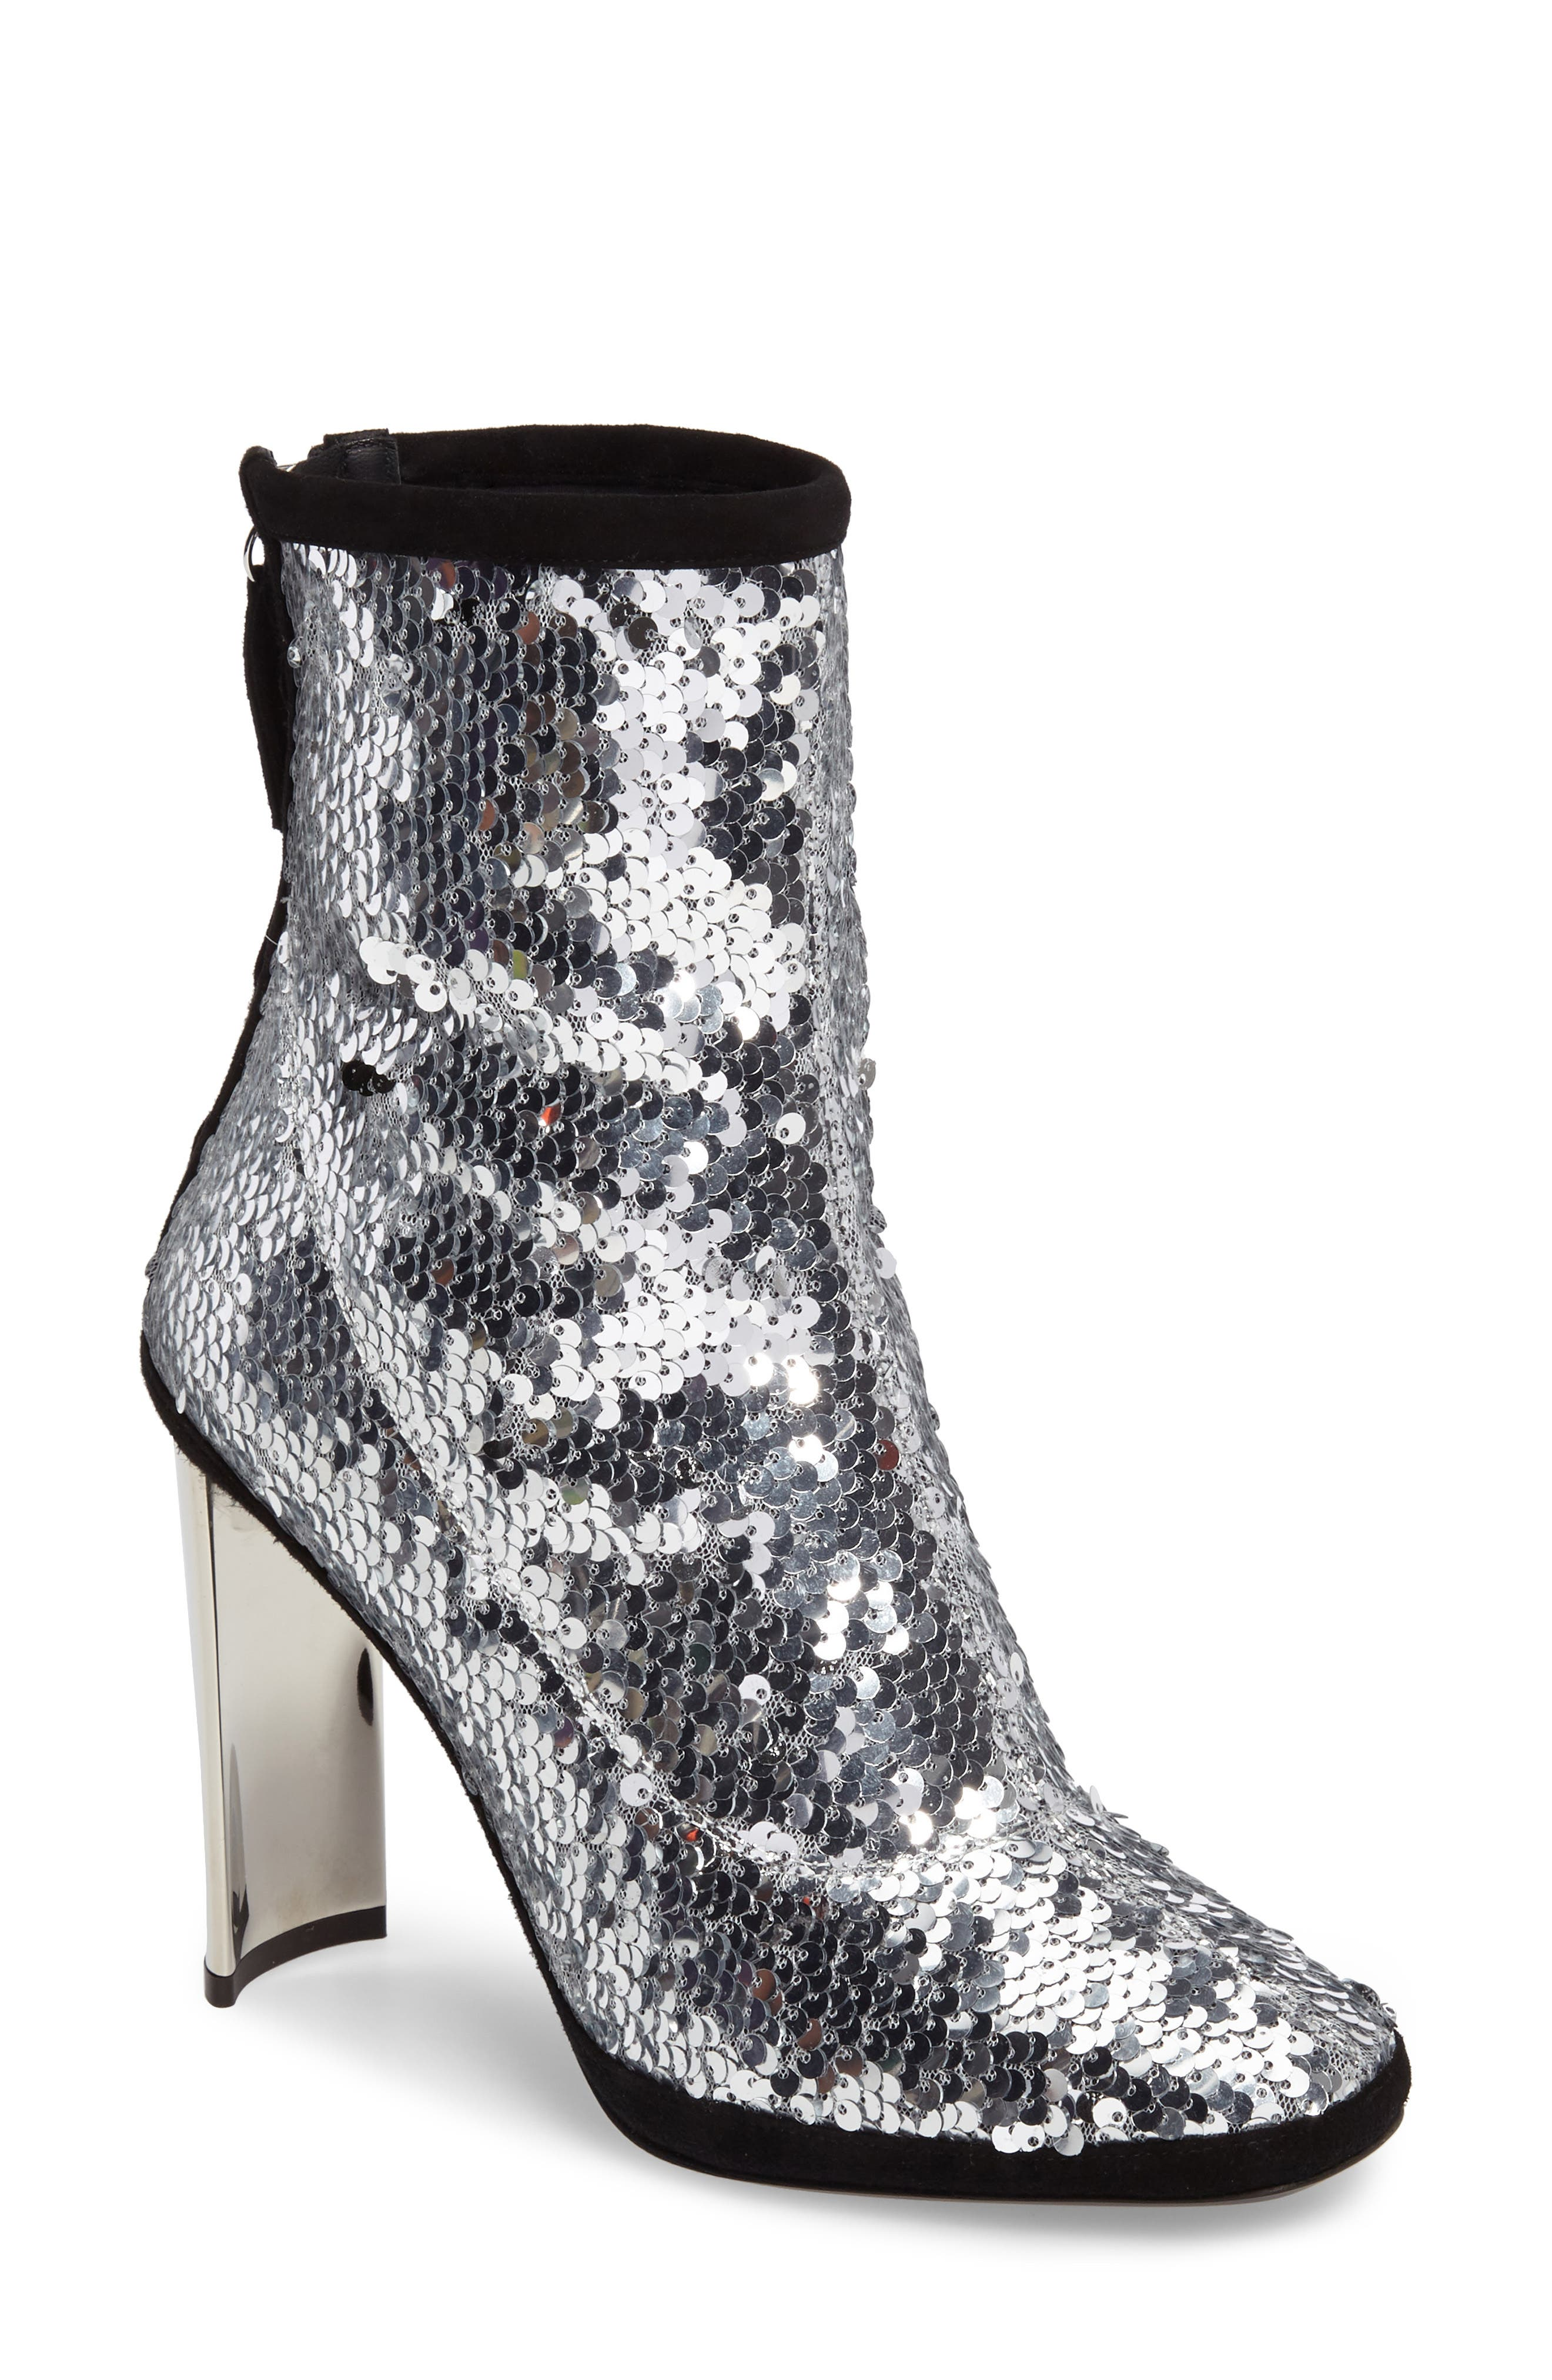 Sequin Curved Heel Bootie,                             Main thumbnail 1, color,                             040